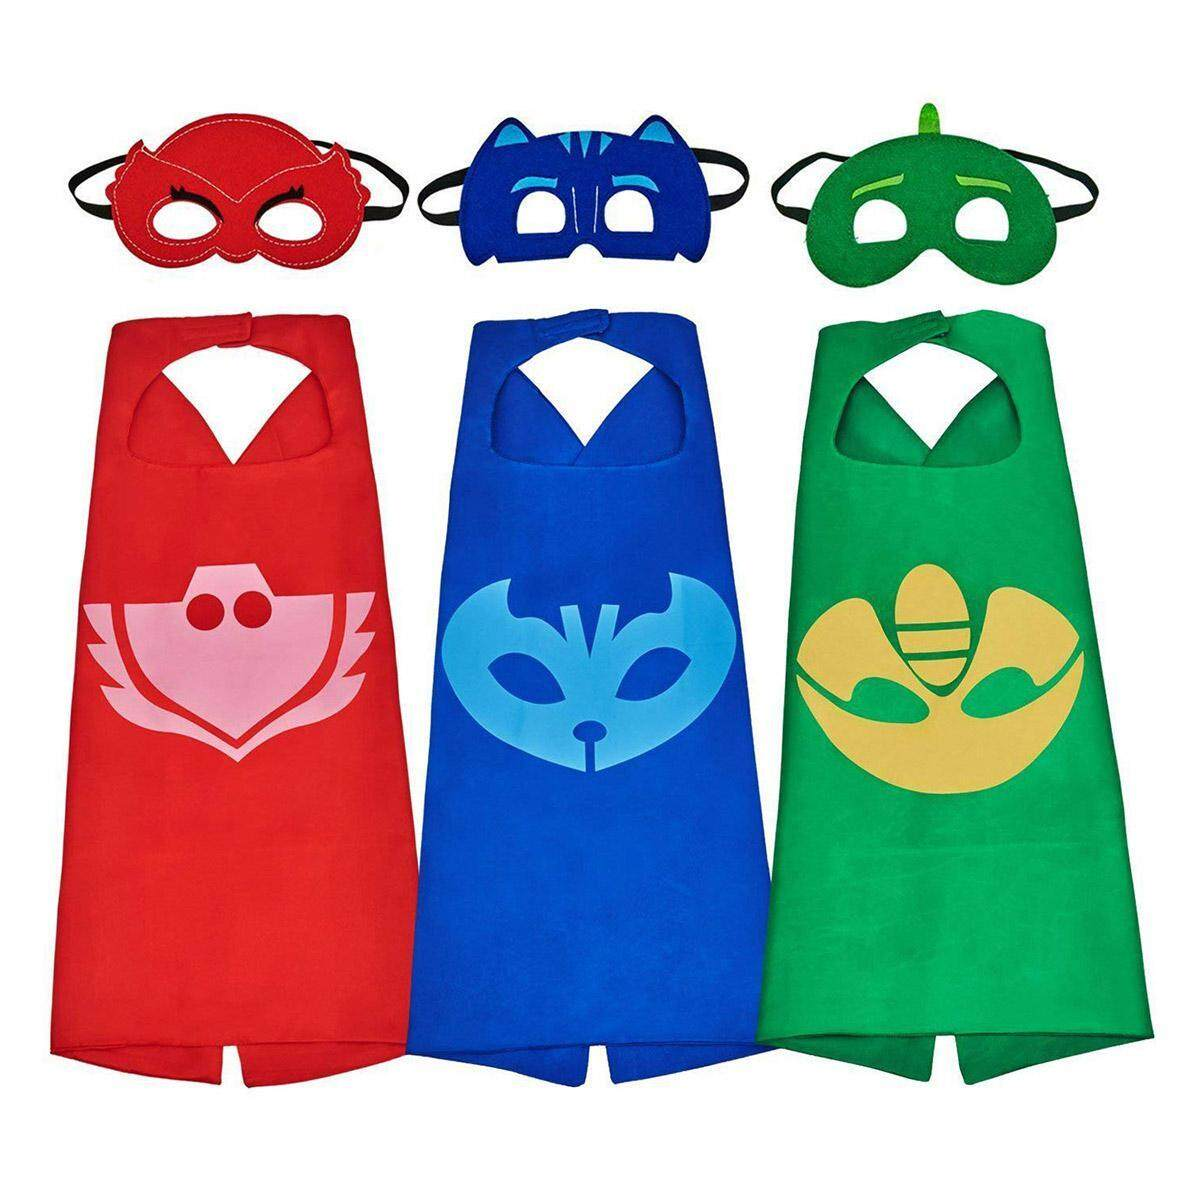 3 Set Superheros Capes Mask Cartoon Costume Dress Up For Kids, Catboy Owlette Gekko Costume For Christmas, Halloween, Party By Kobwa Direct.